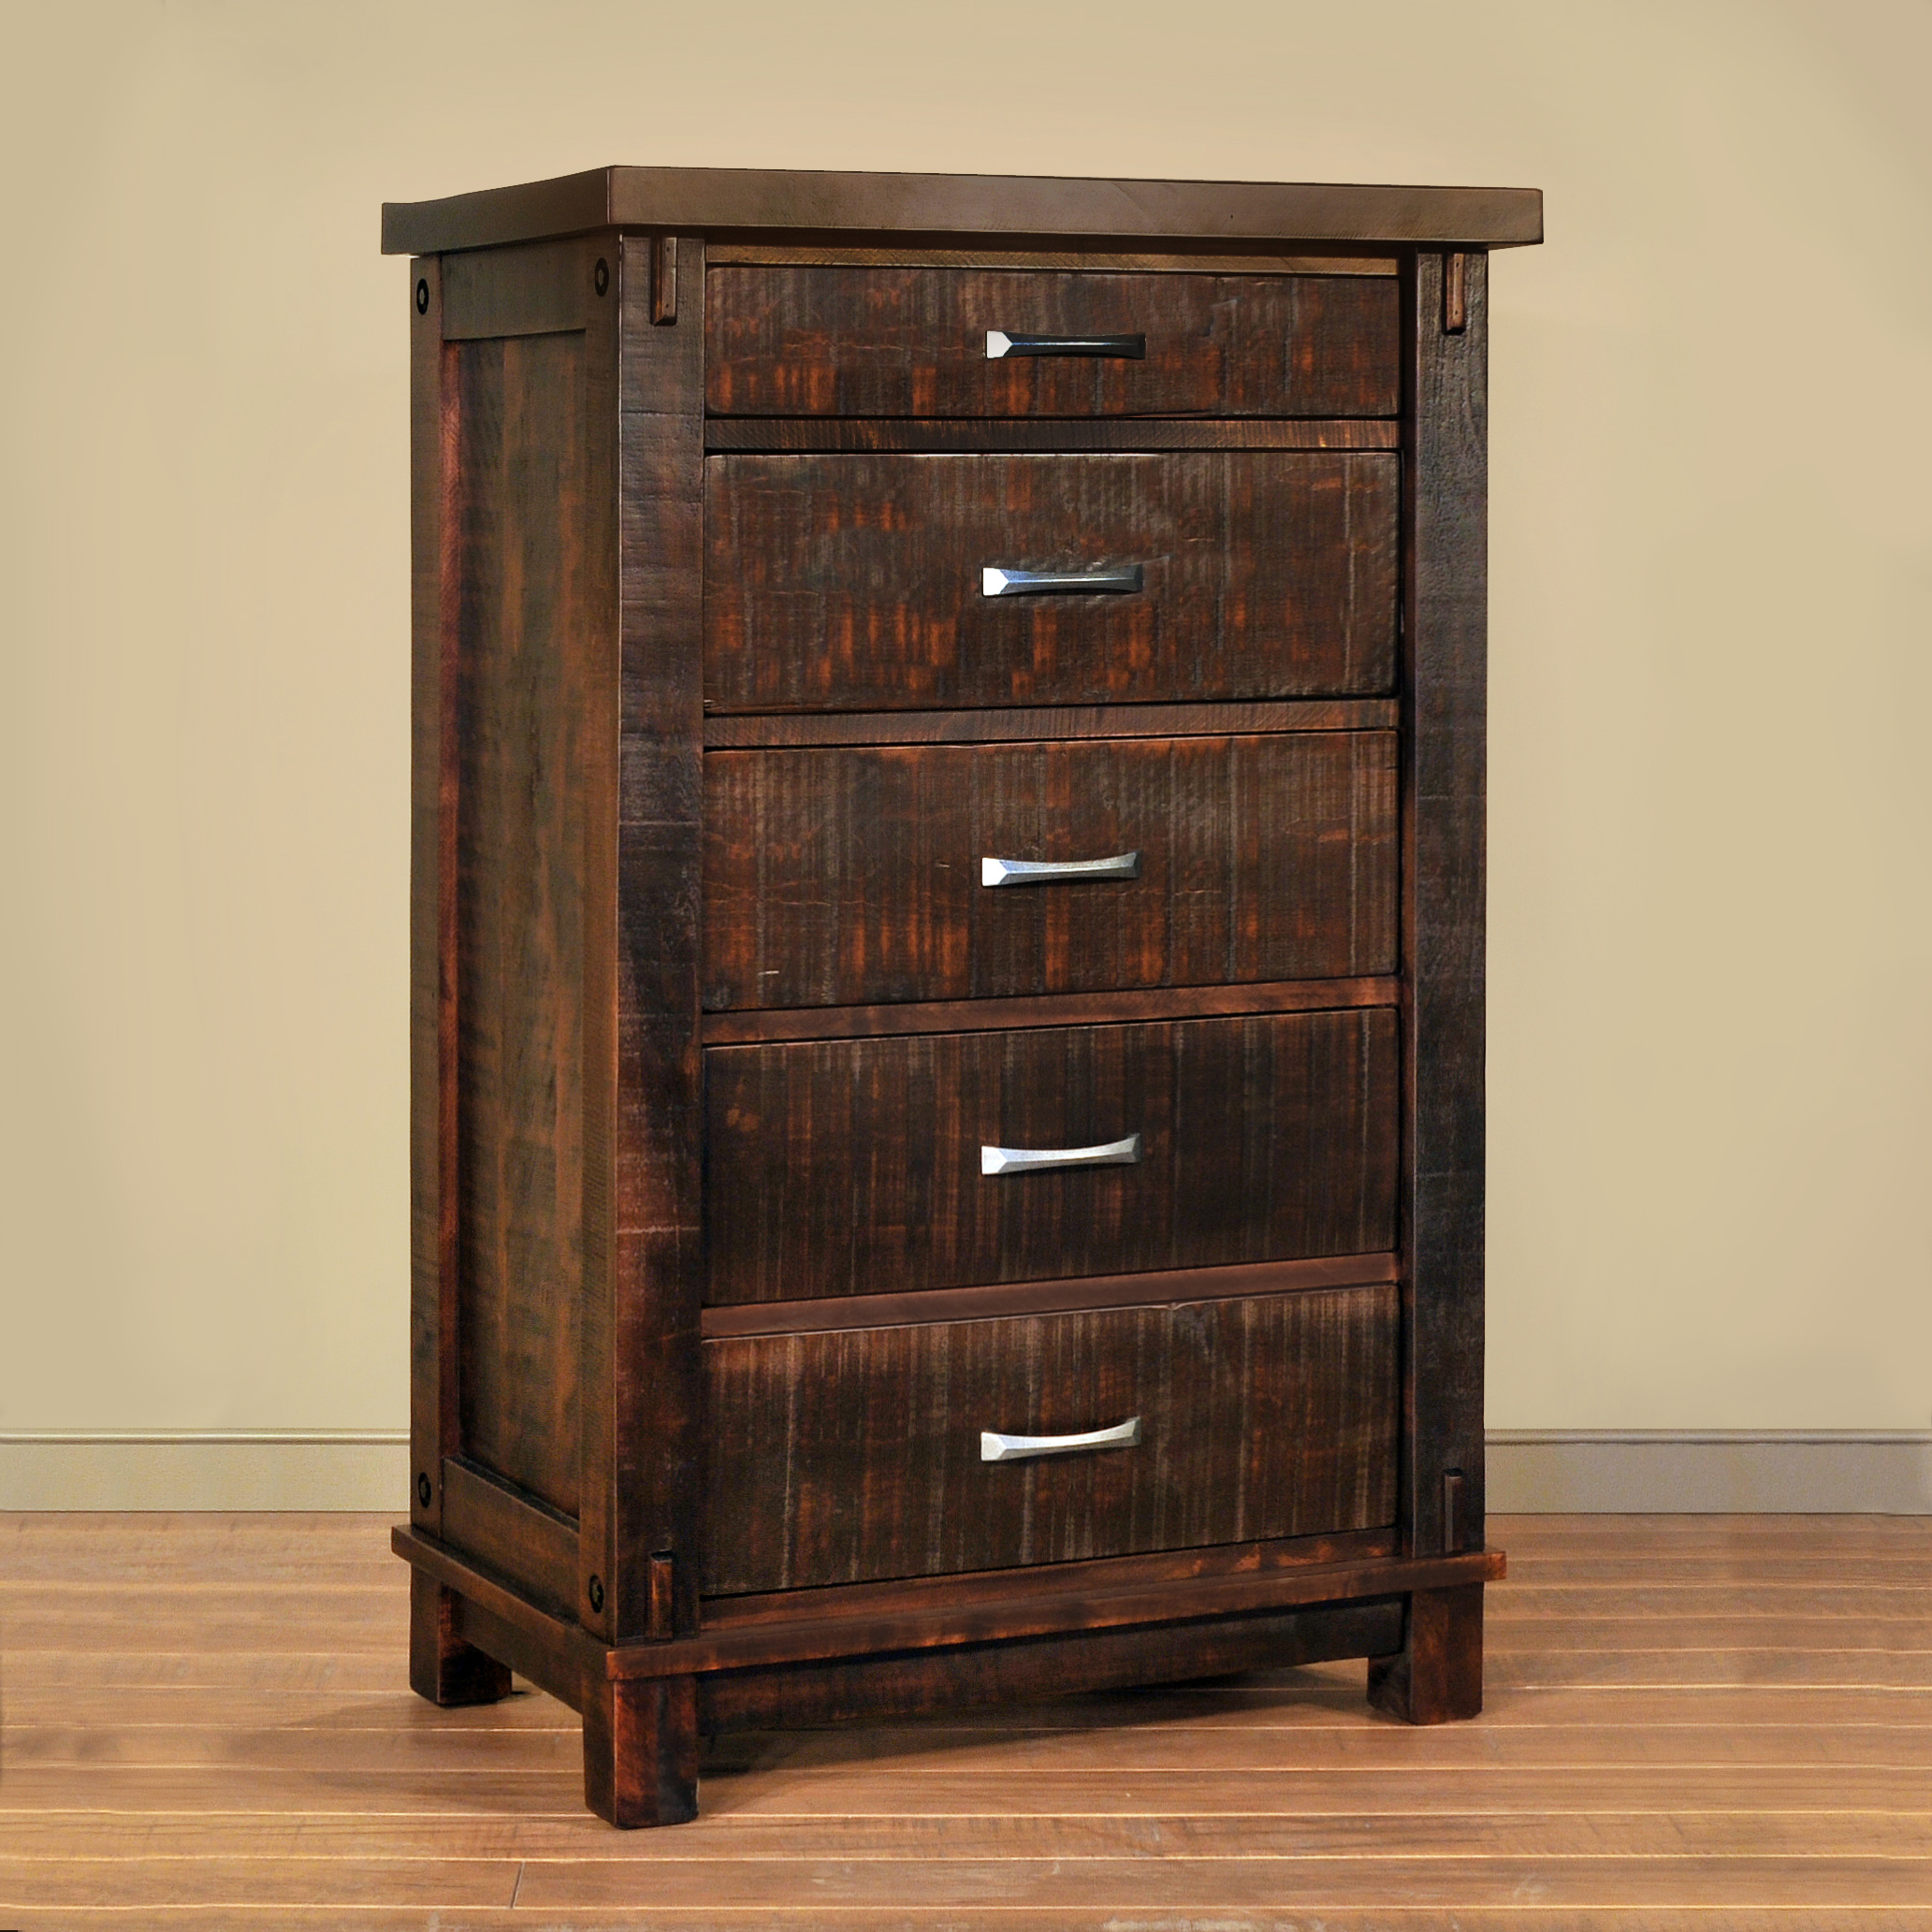 Timber chest for sale in PA